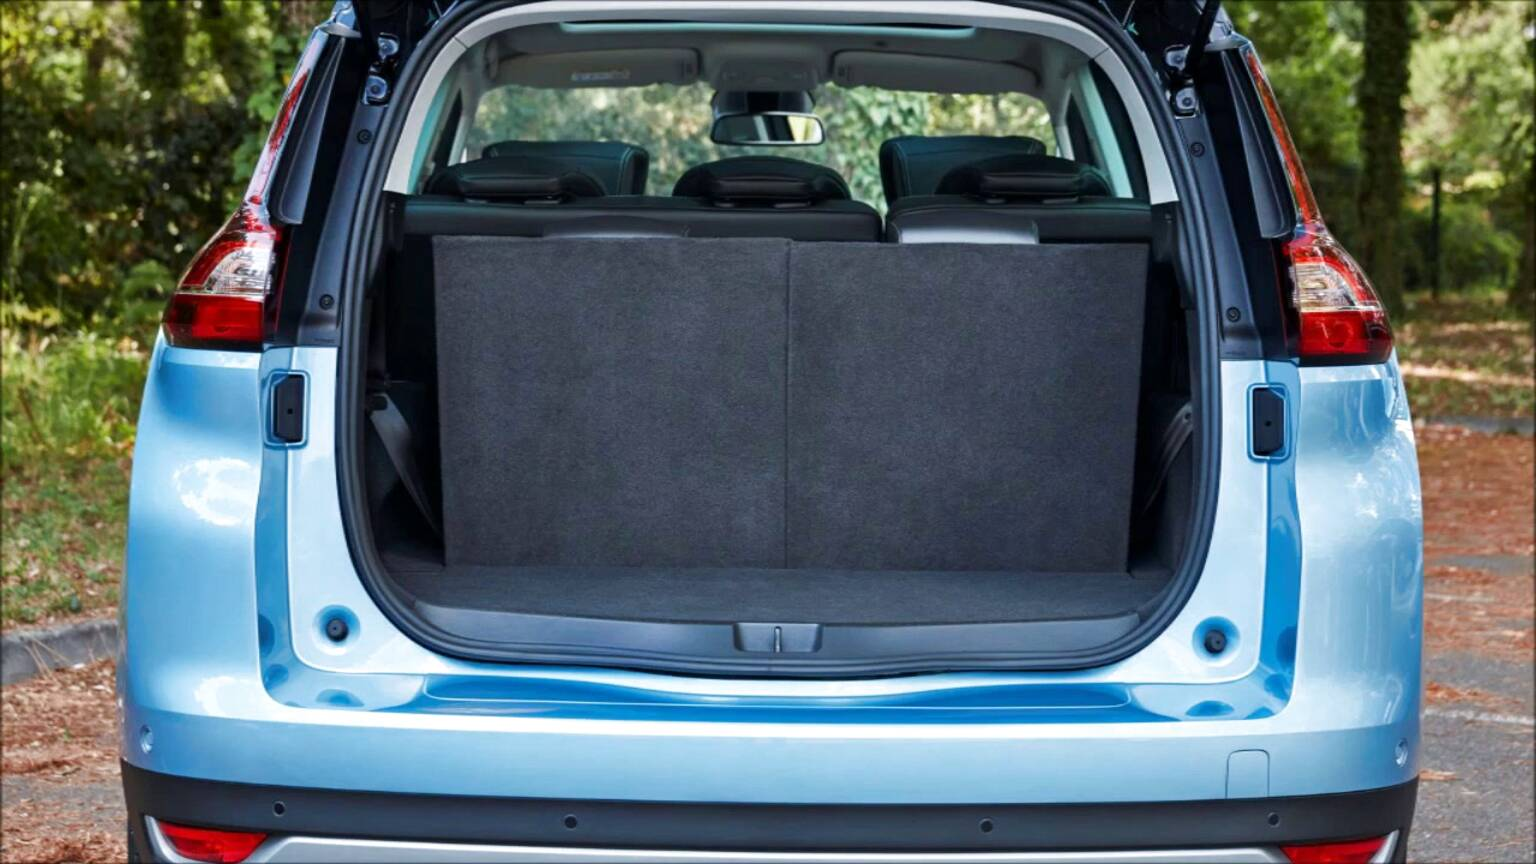 Renault Grand Scenic Tailgate For Sale In Uk